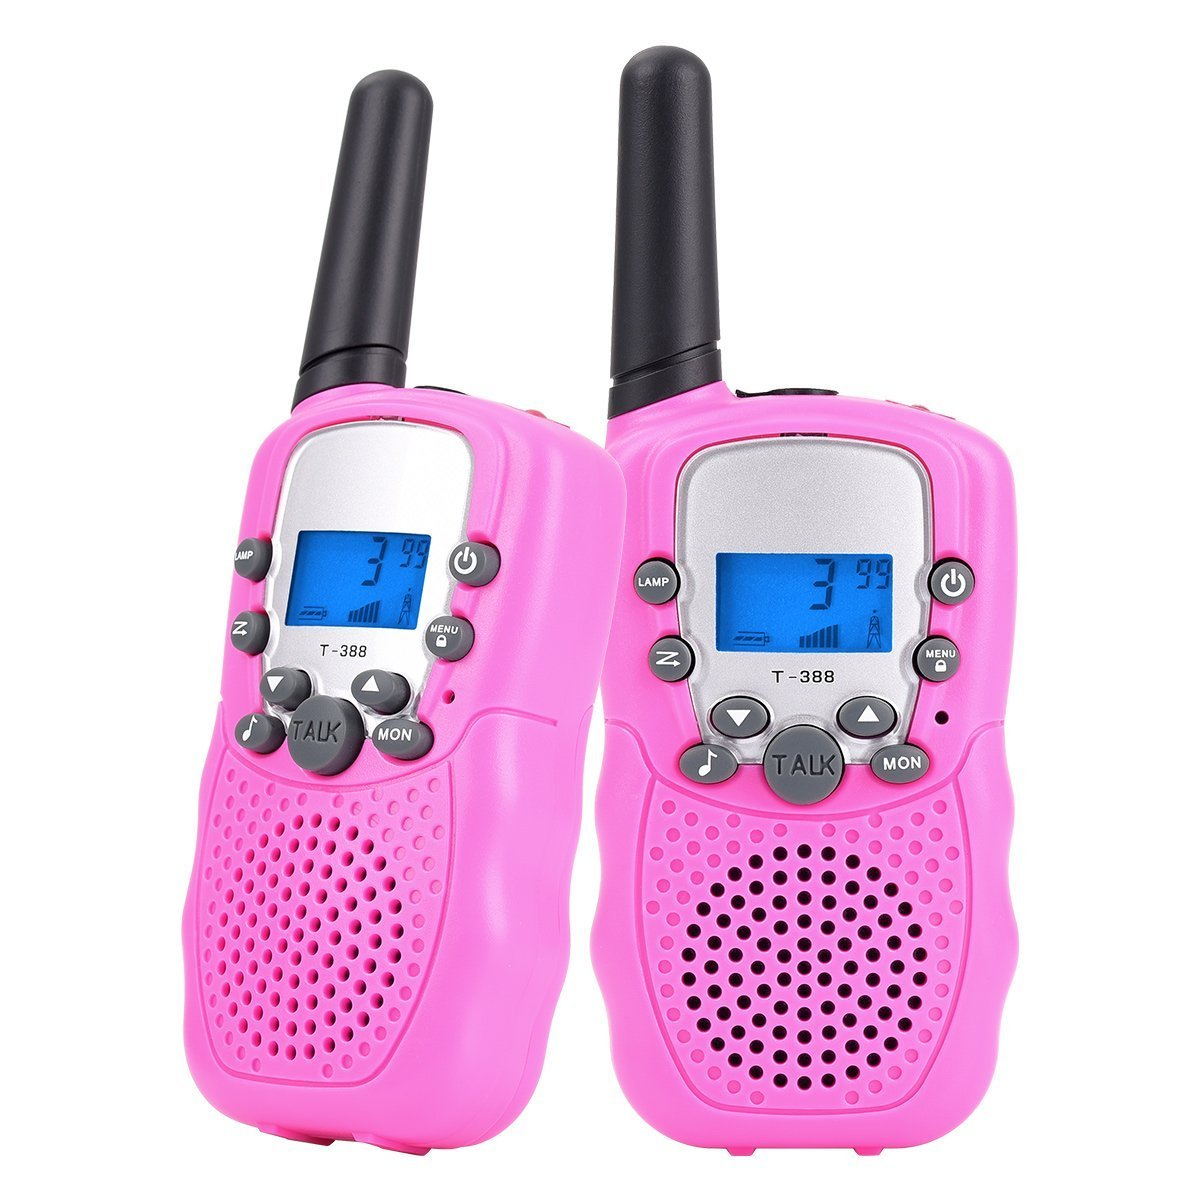 OPENDGO Walkie Talkies for Kids Long Range Two Way Radio 3KM 22 Channels Battery Operated Handset with Indicator and Belt Clip for Children Outdoor Camping Hiking 2 PCS(Pink)